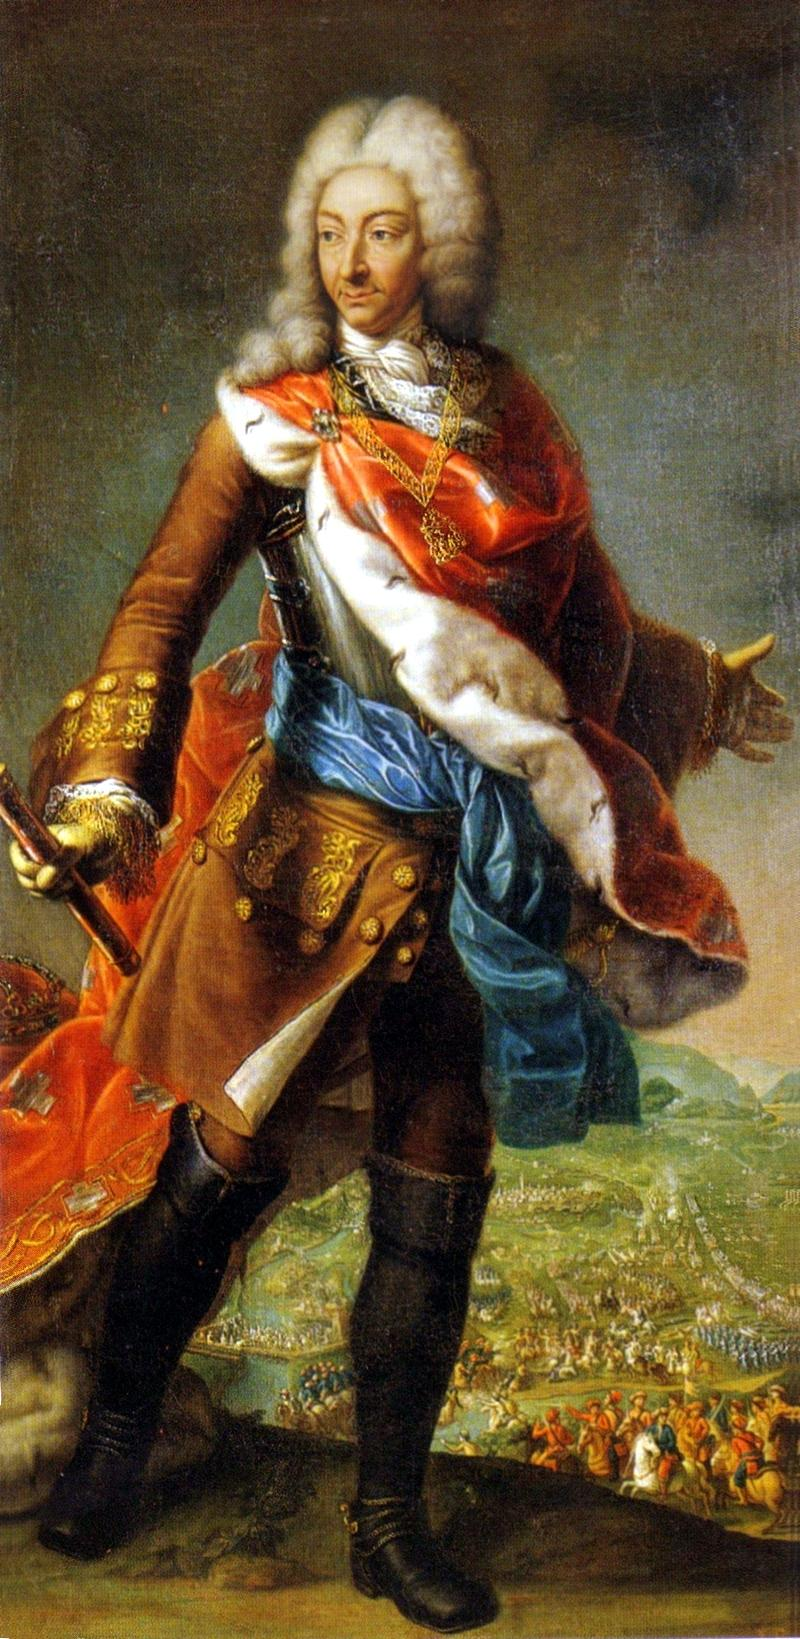 Maria Giovanna Battista Clementi, La Clementina, Portrait of Victor Amadeus II of Savoy, during the siege of Turin (1706), Reggia di Venaria (from Castle of Racconigi).jpg